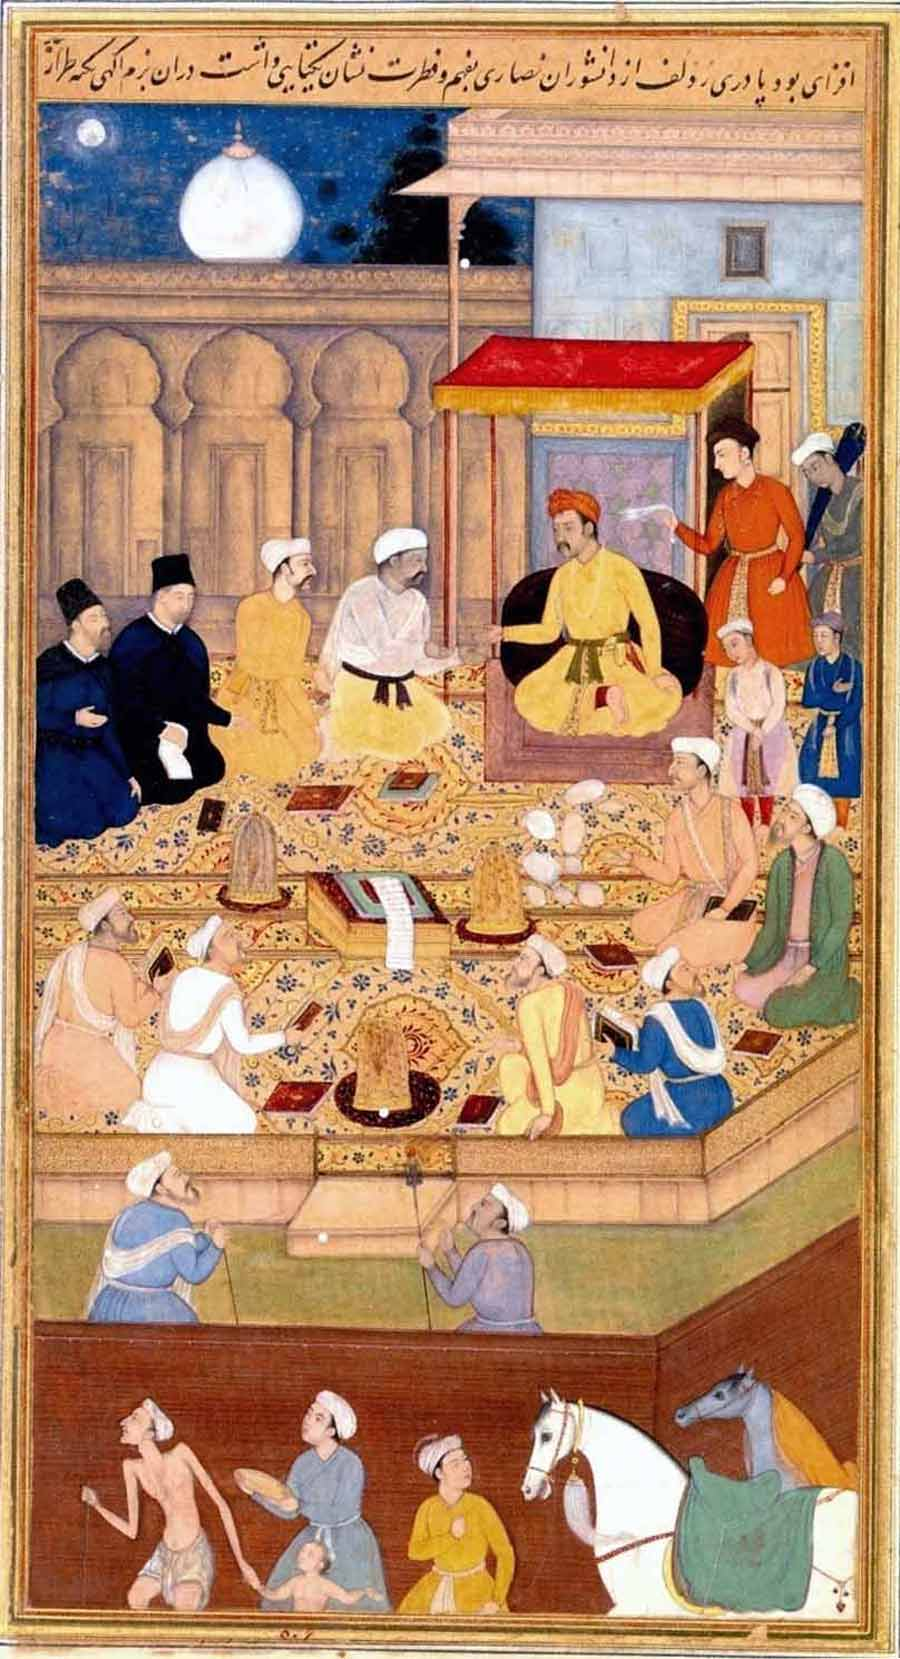 Akbar-at-Ibadat-Khana-with-Jesuits